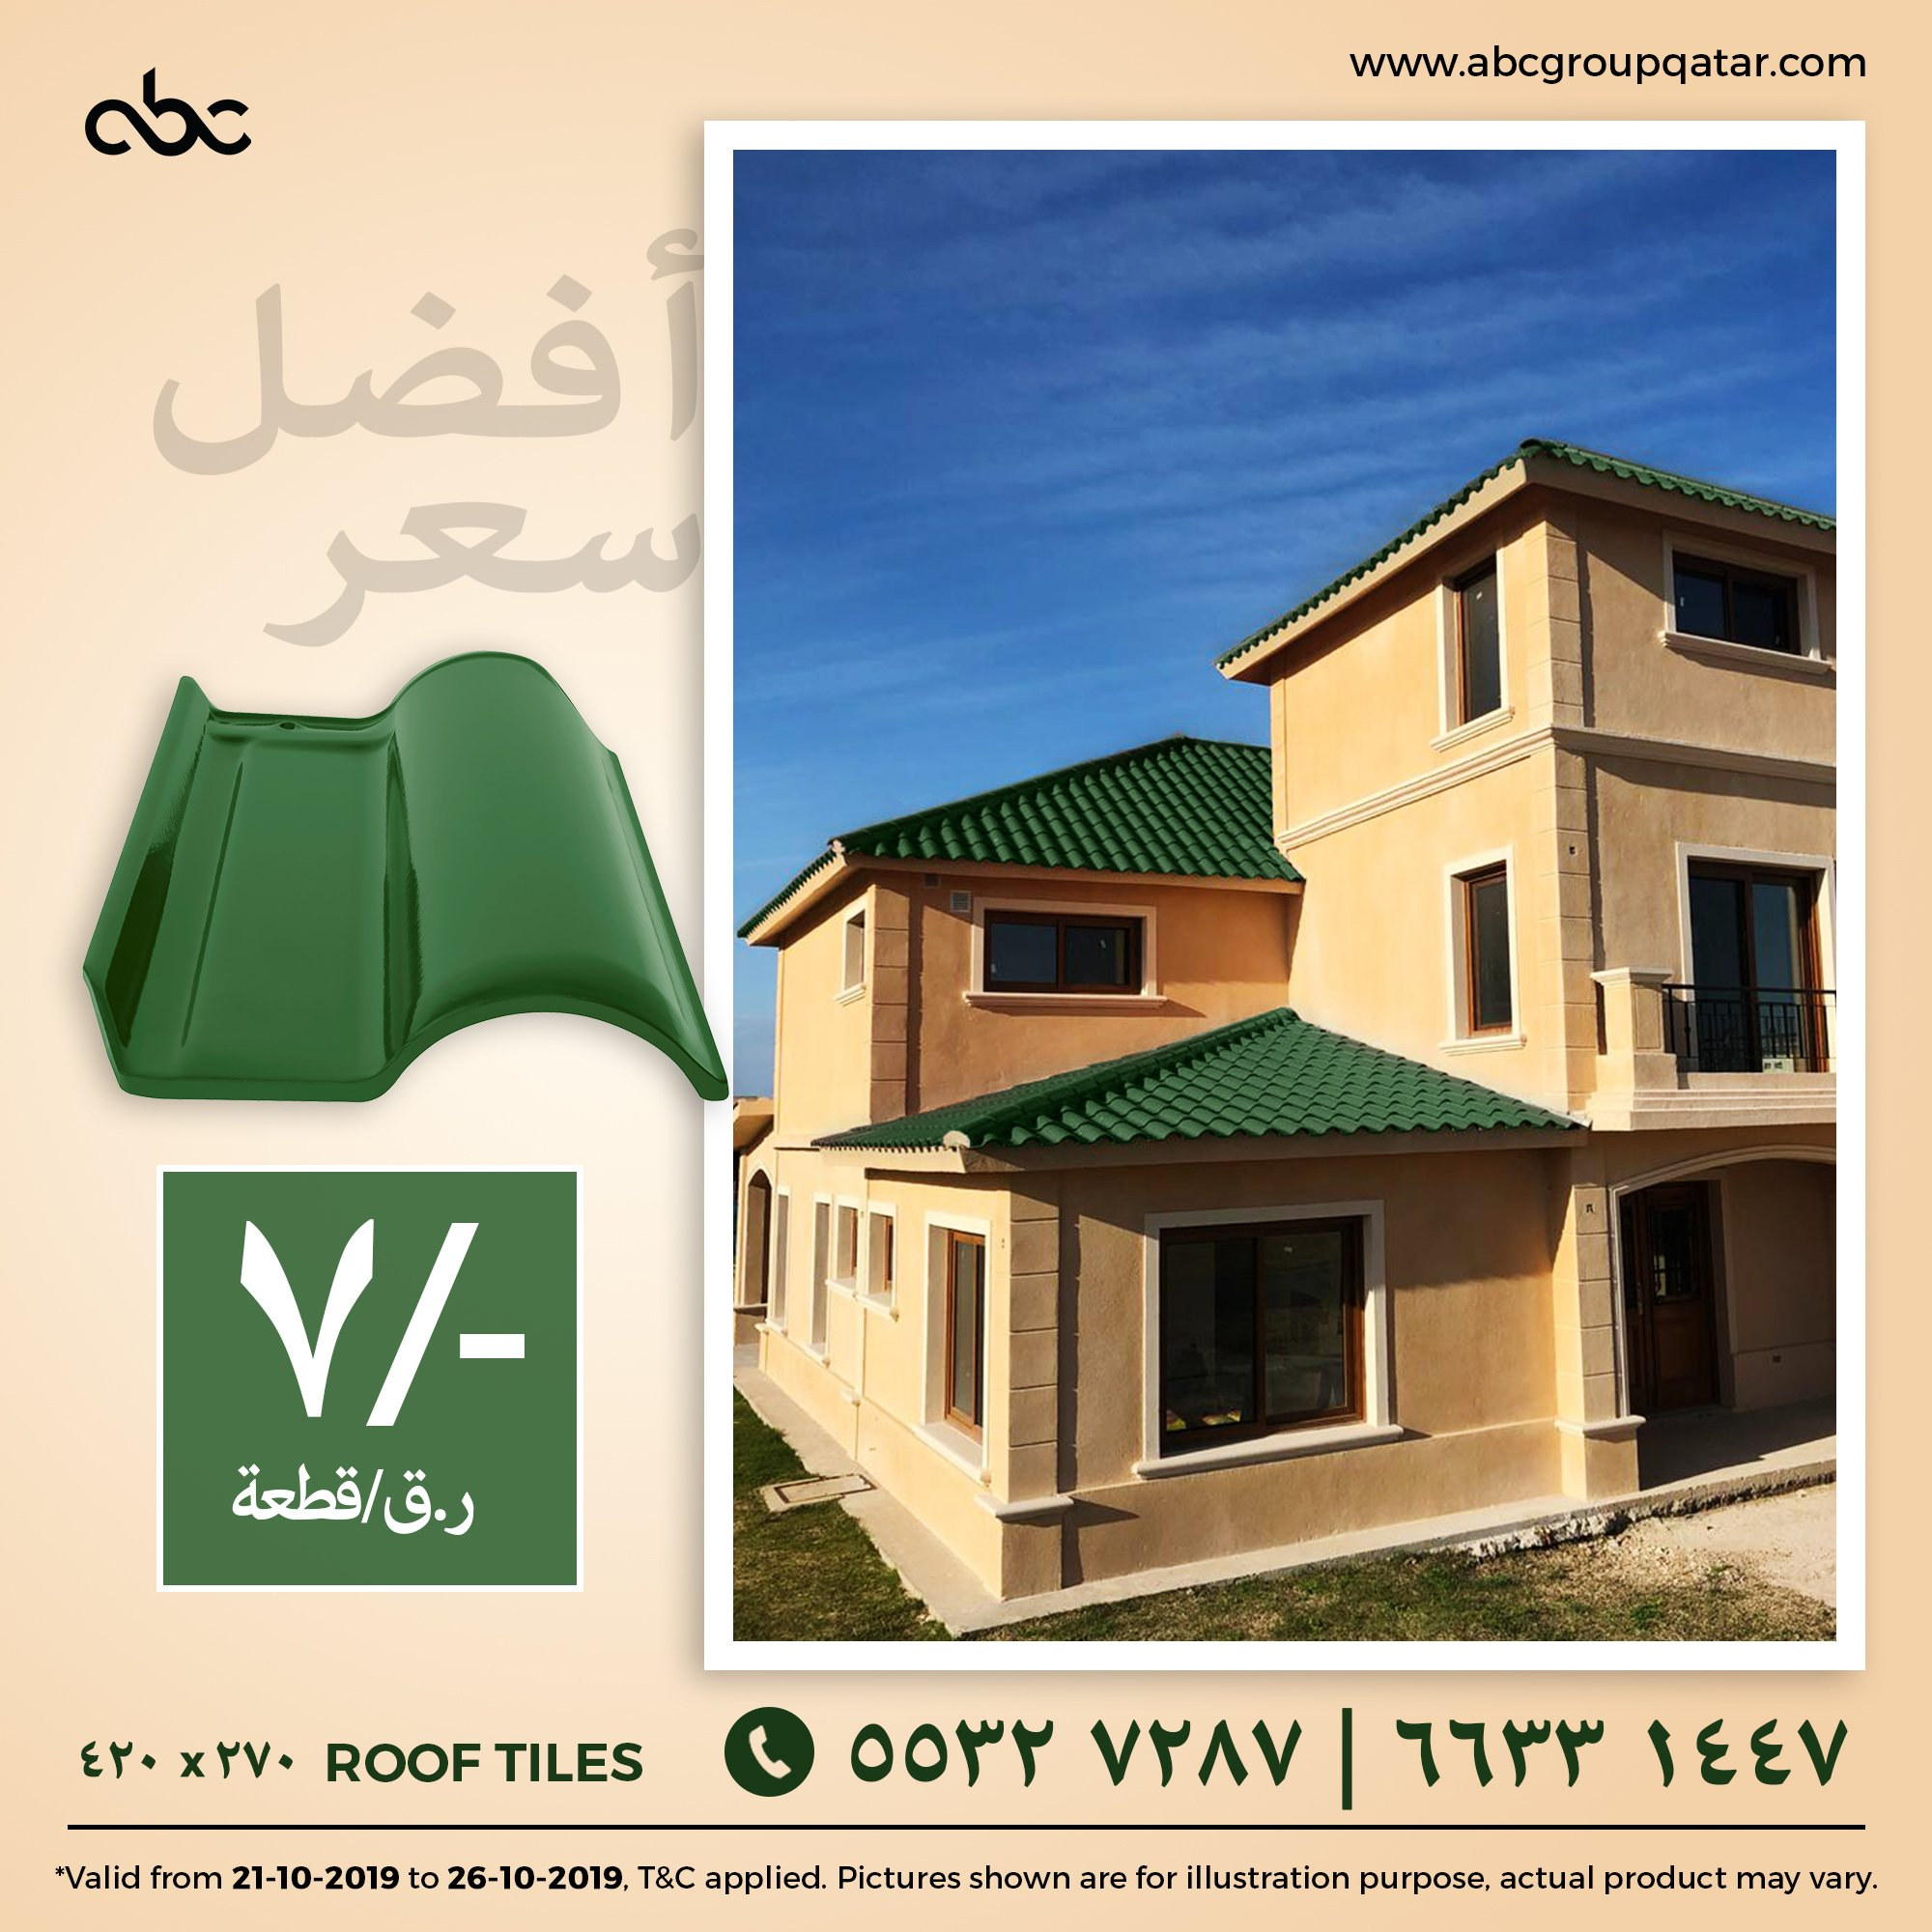 Abc Ceramic On Twitter Roofing Tiles For Best Price Get It Now For Only 7 Qar Visit Our Showroom Or Call 66331447 5055 9932 For More Details Abcceramic Abc Roofingtile Bestprice